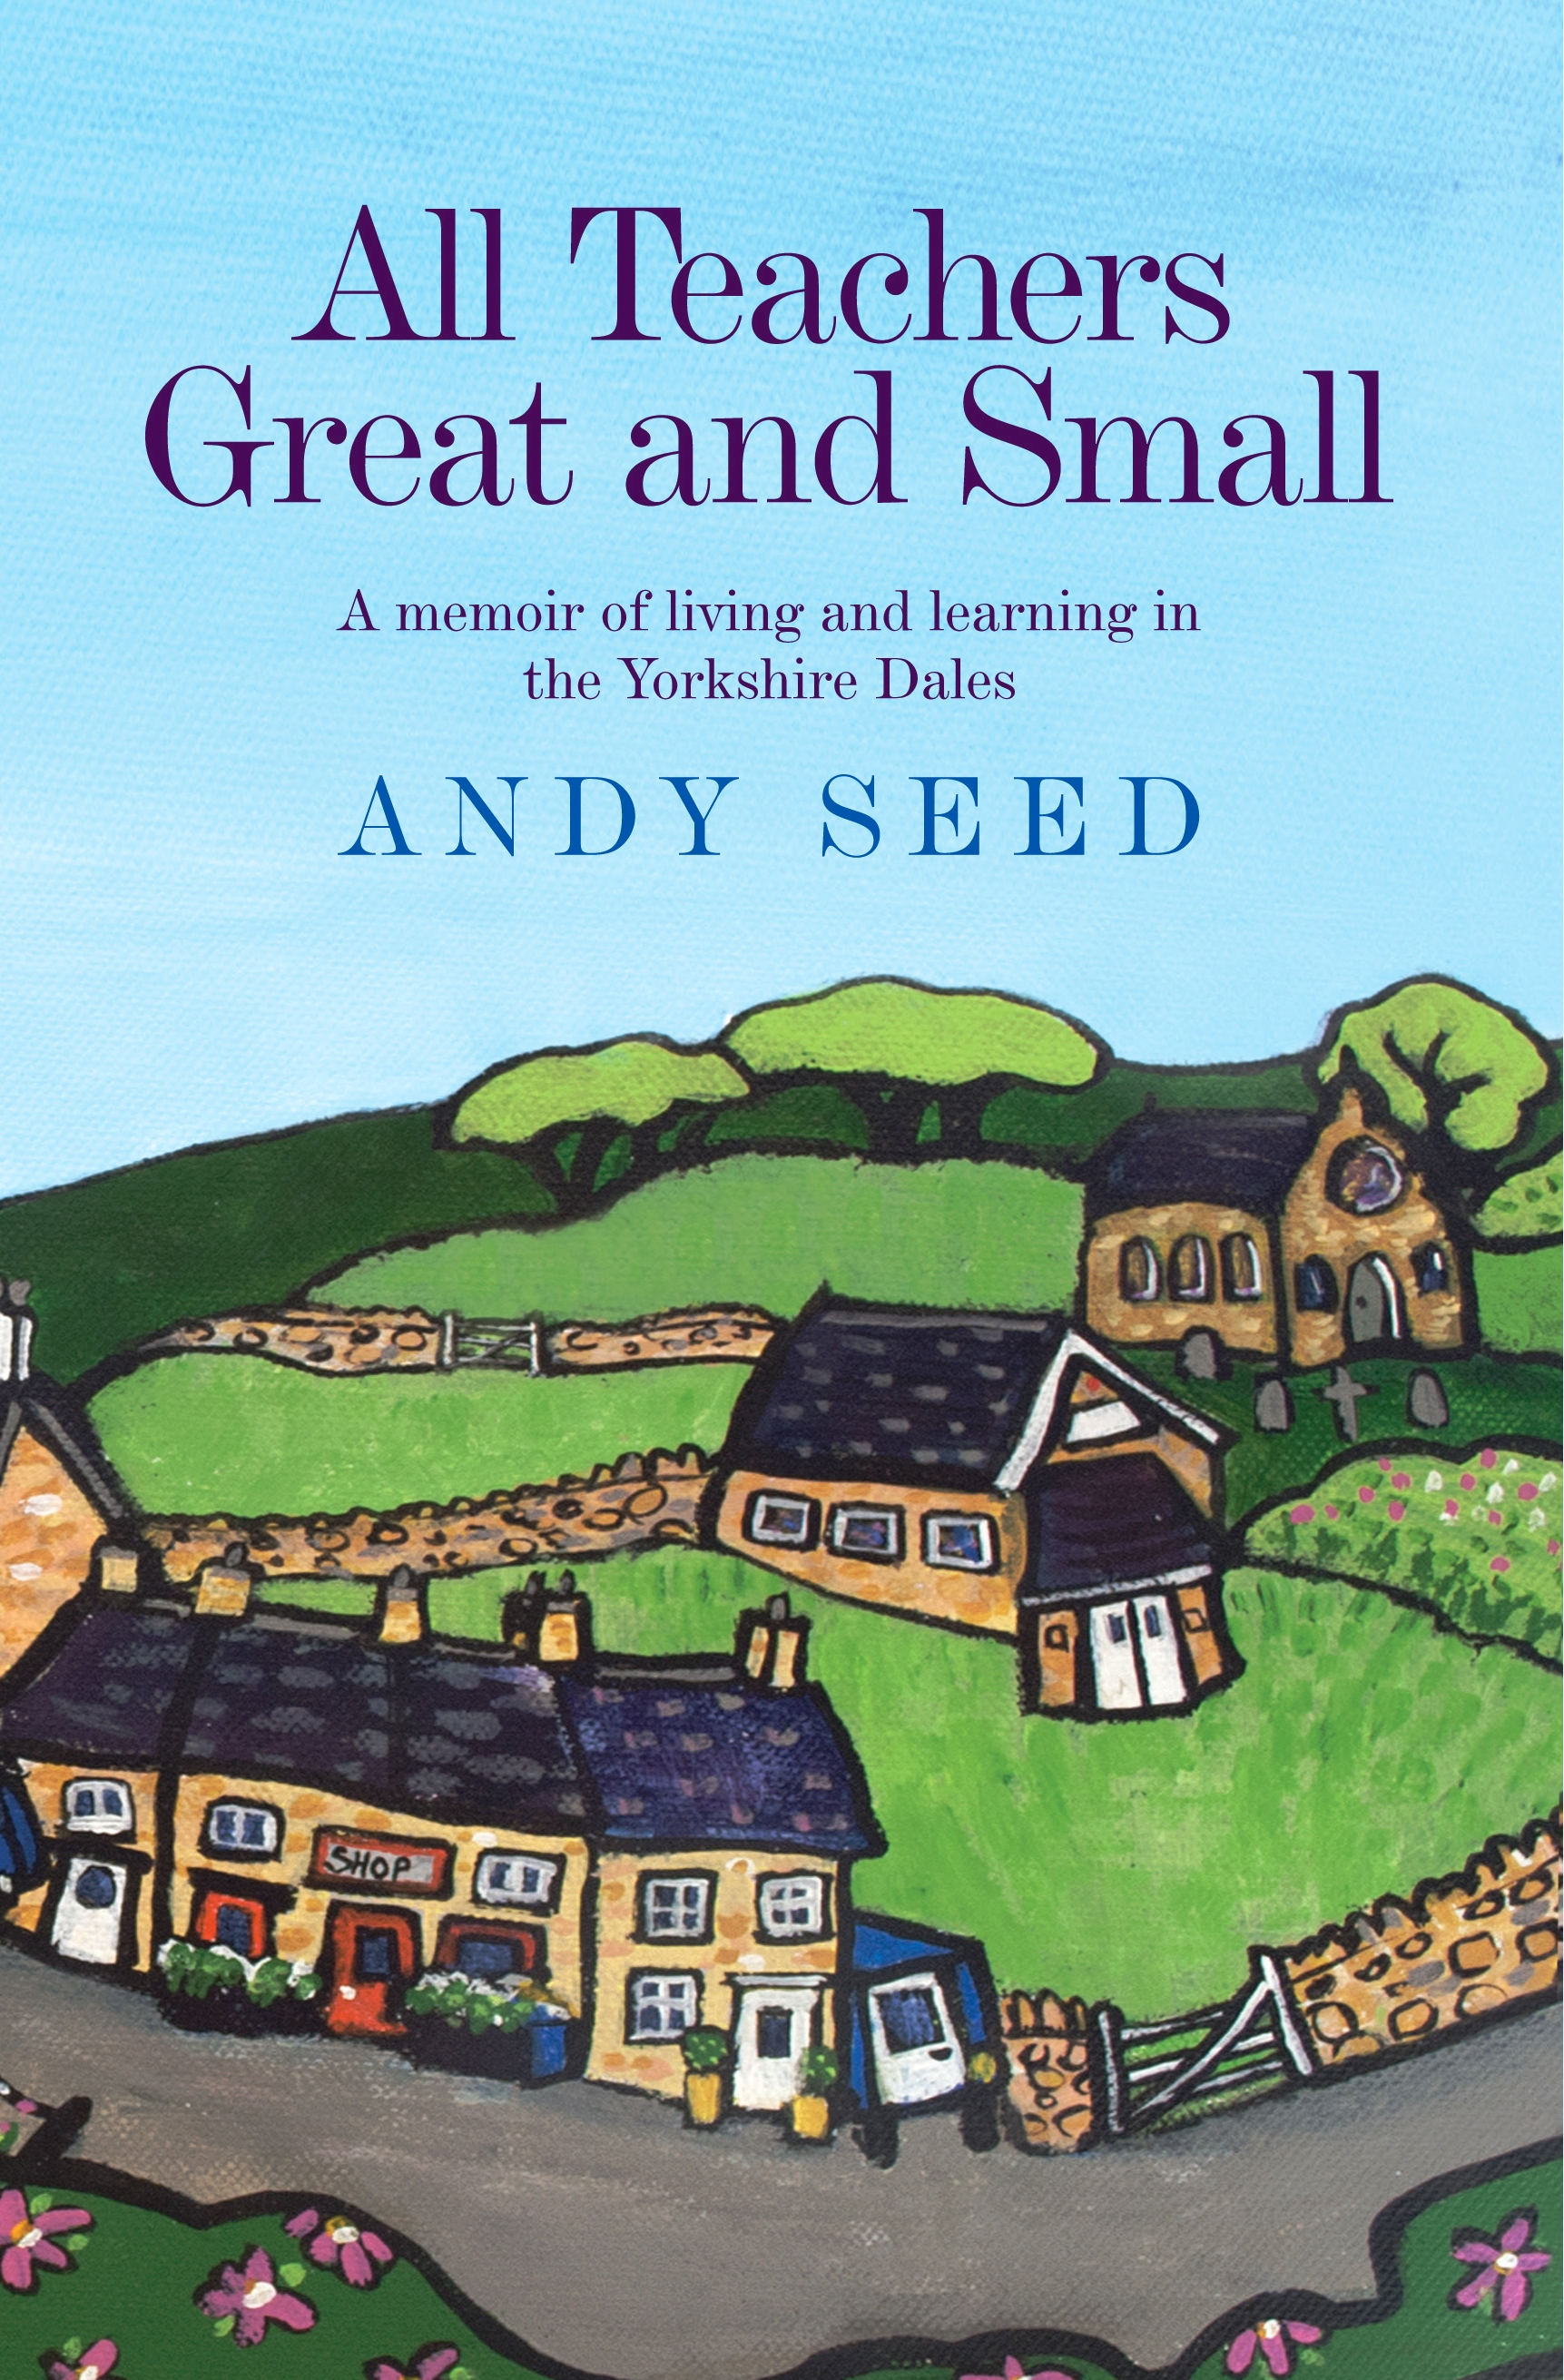 Cover for 'All teachers Great and Small' by Andy Seed